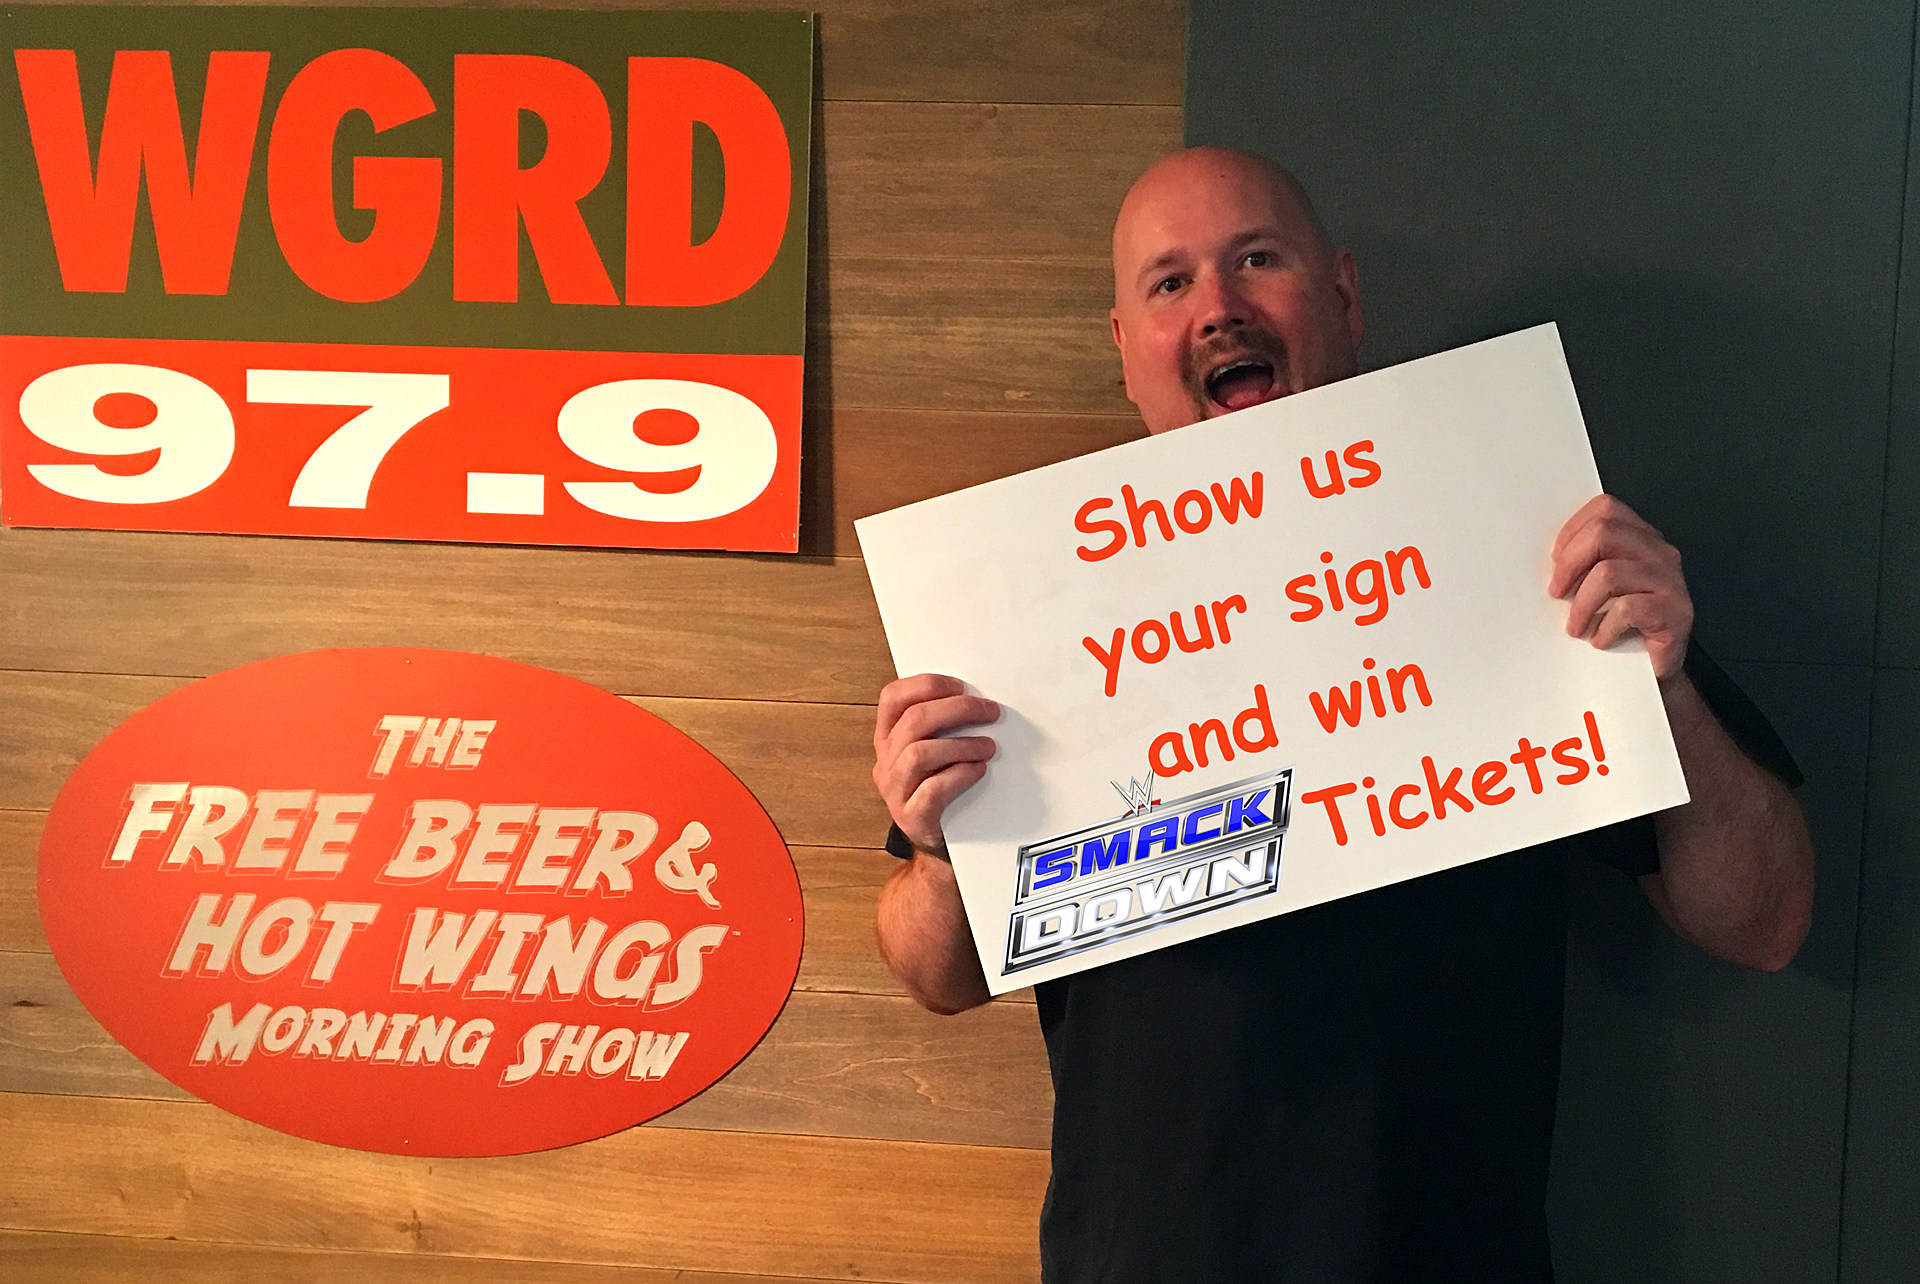 97 9 phone number to win tickets